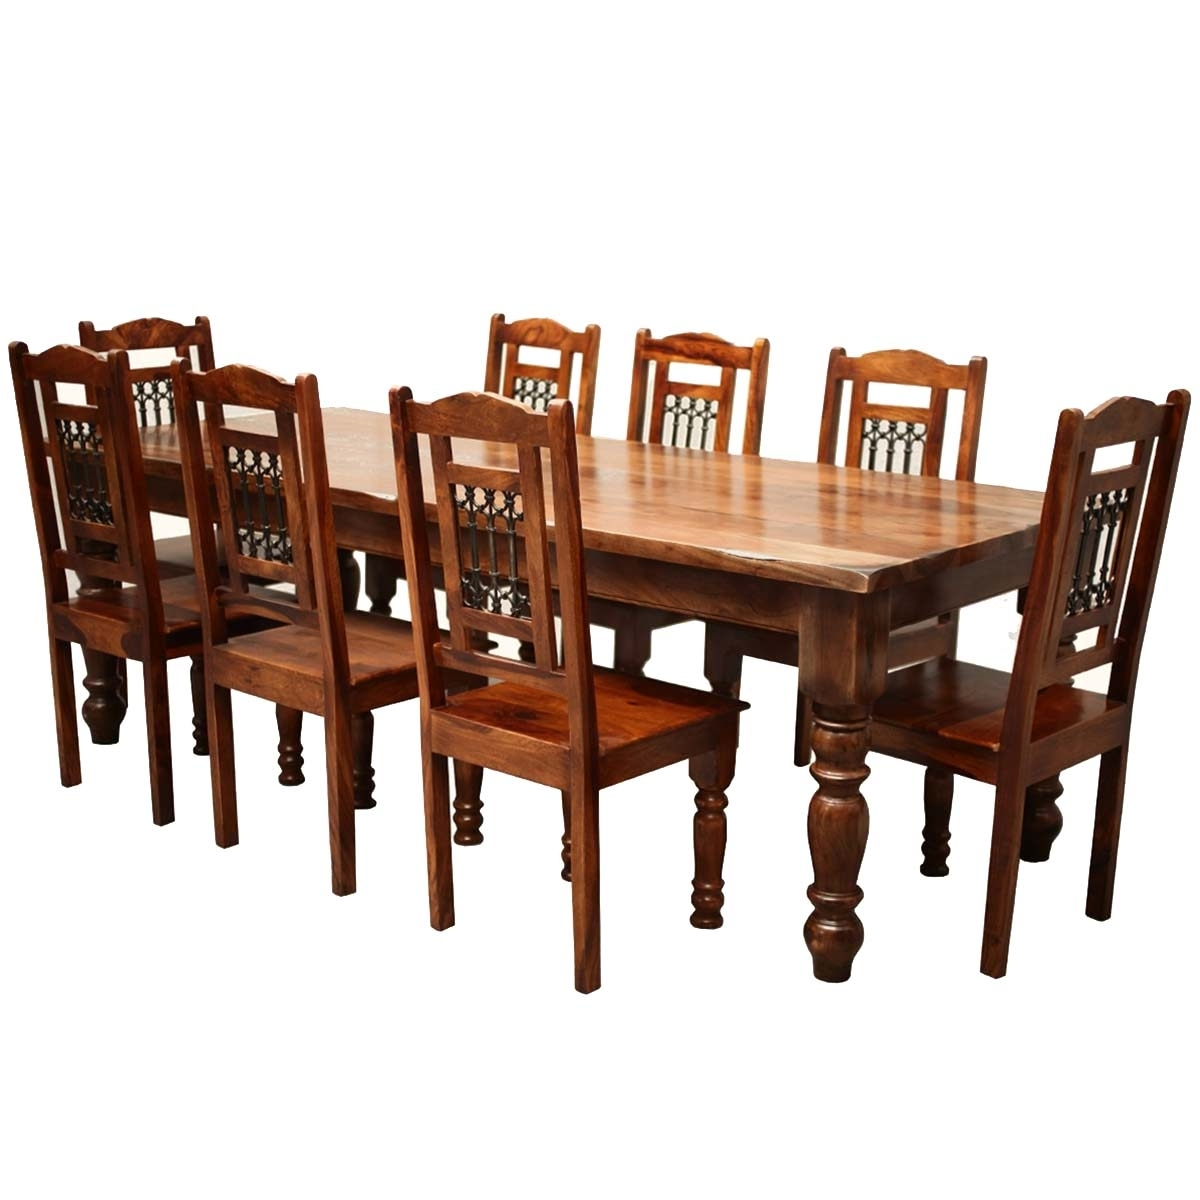 Most Recently Released 8 Chairs Dining Tables Regarding Rustic Furniture Solid Wood Large Dining Table & 8 Chair Set (View 6 of 25)